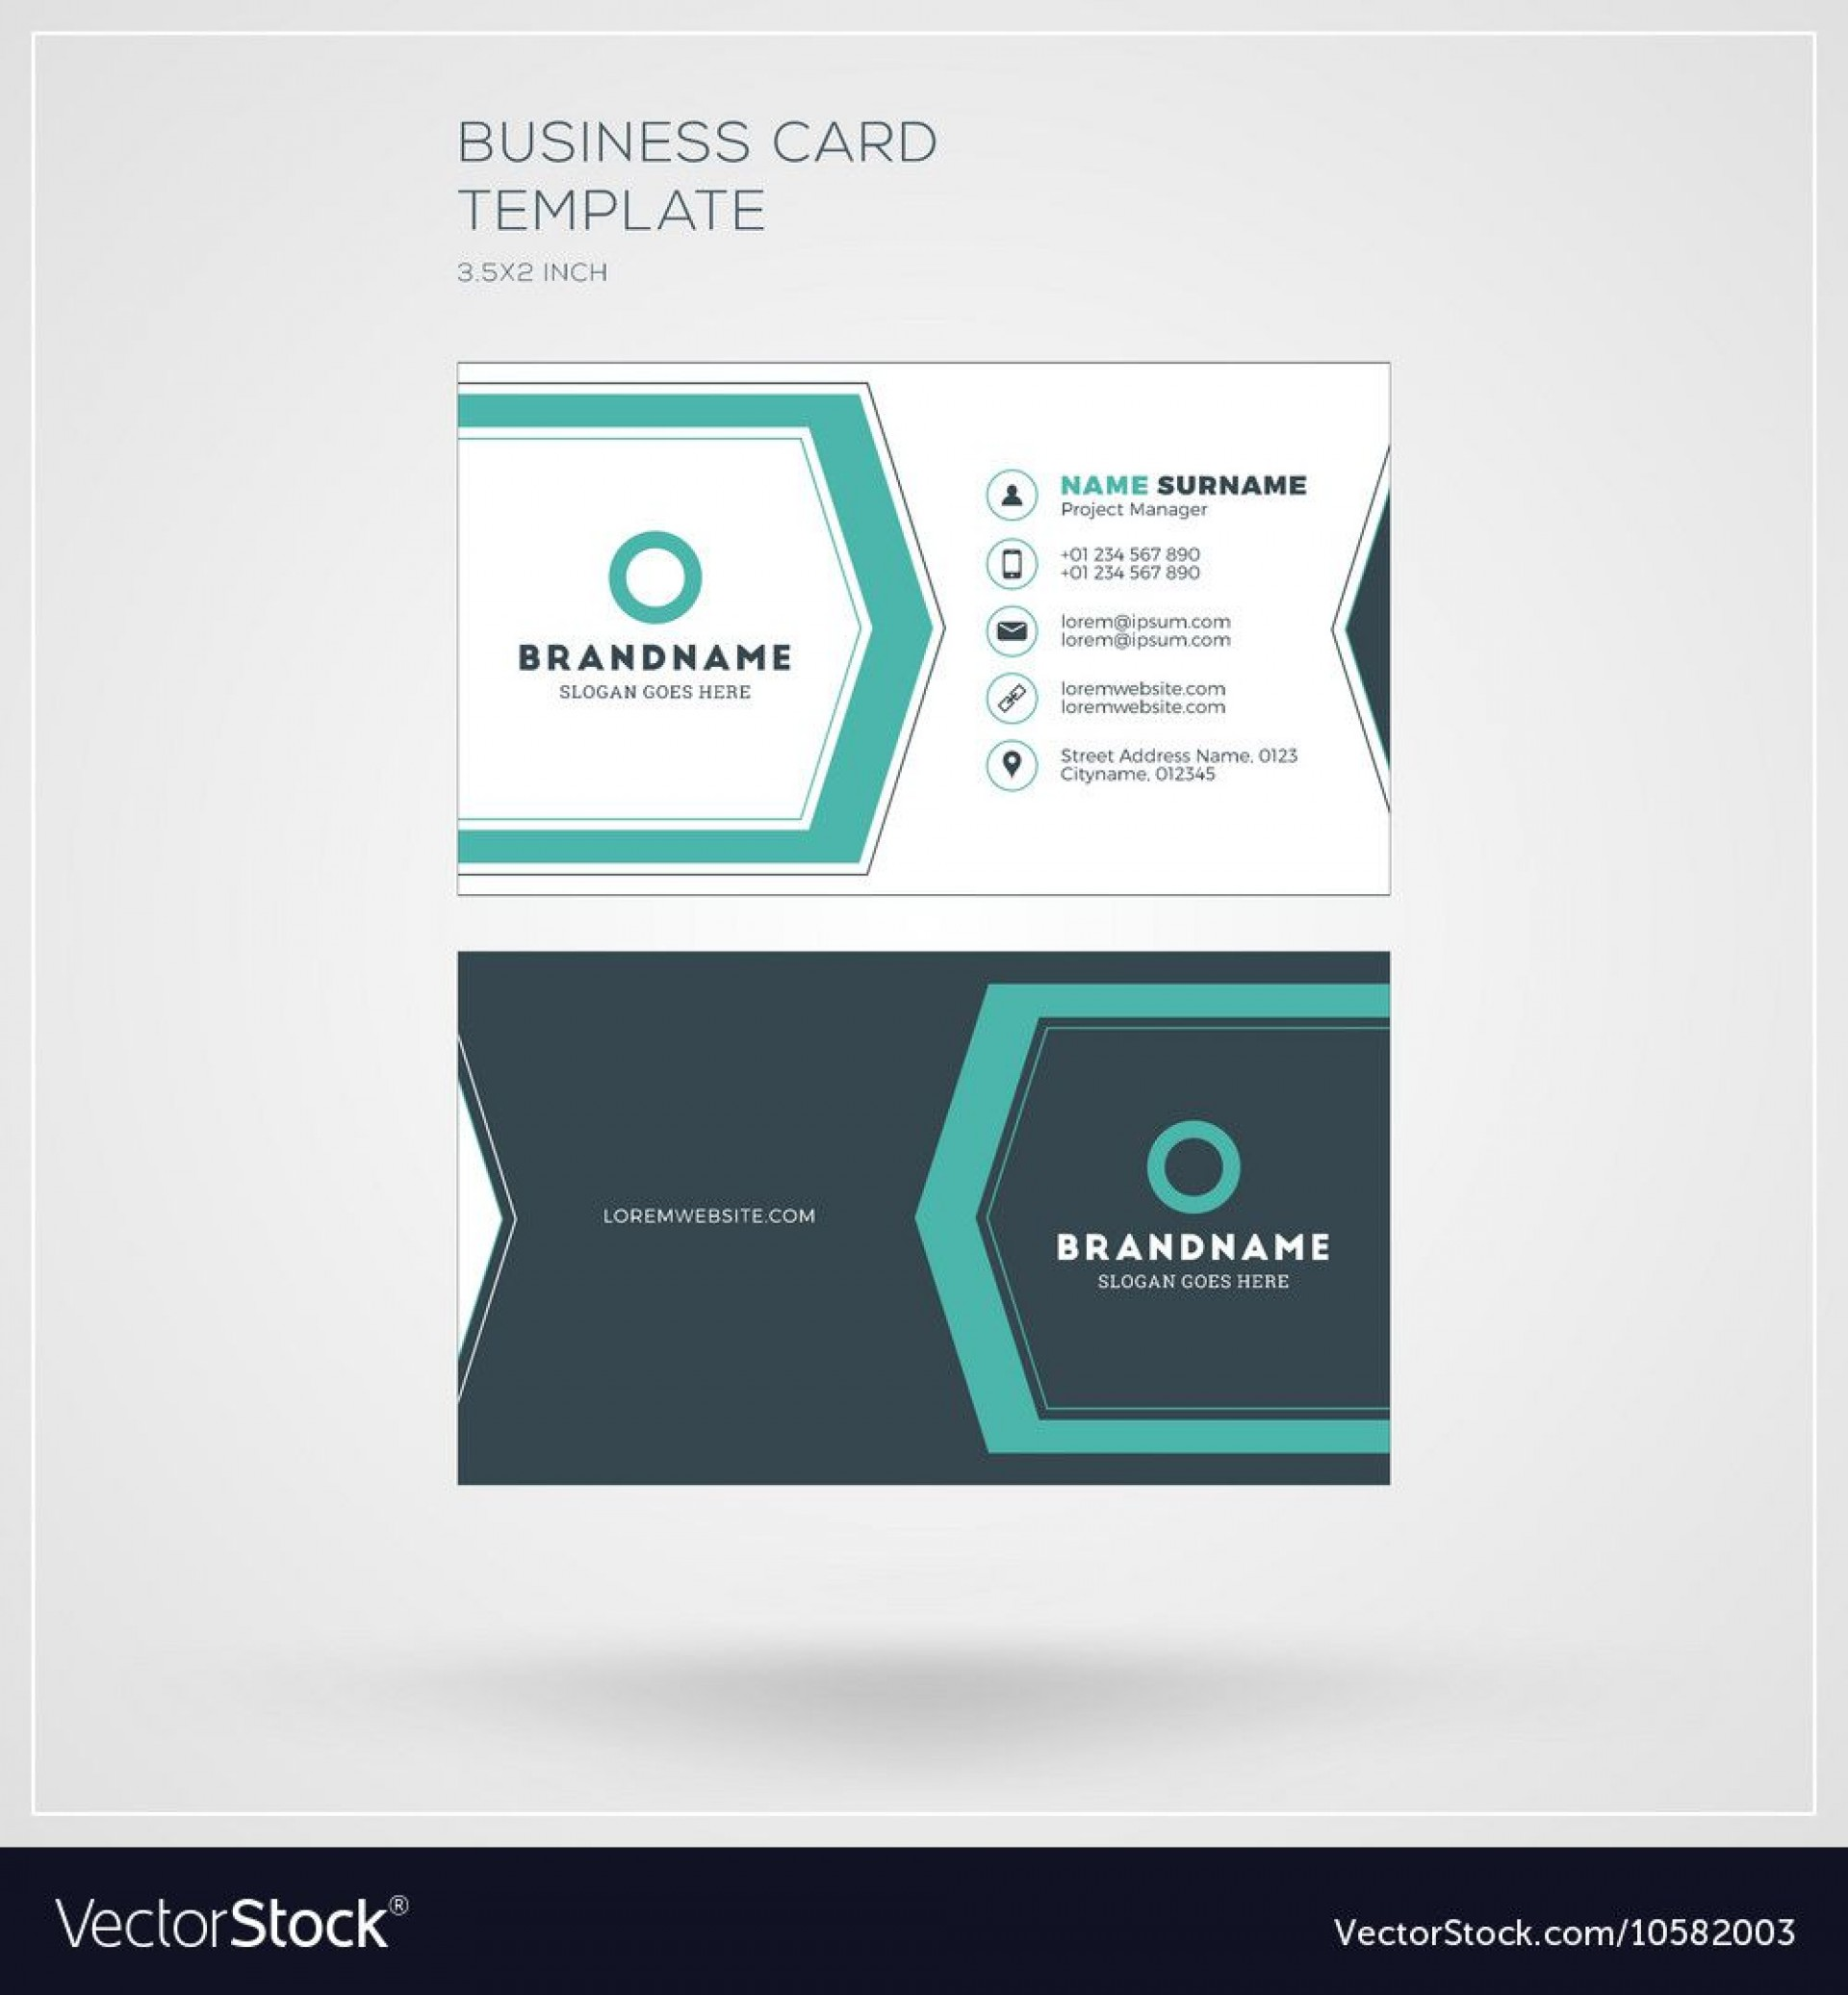 003 Magnificent Personal Busines Card Template Concept  Trainer Design Psd Fitnes1920